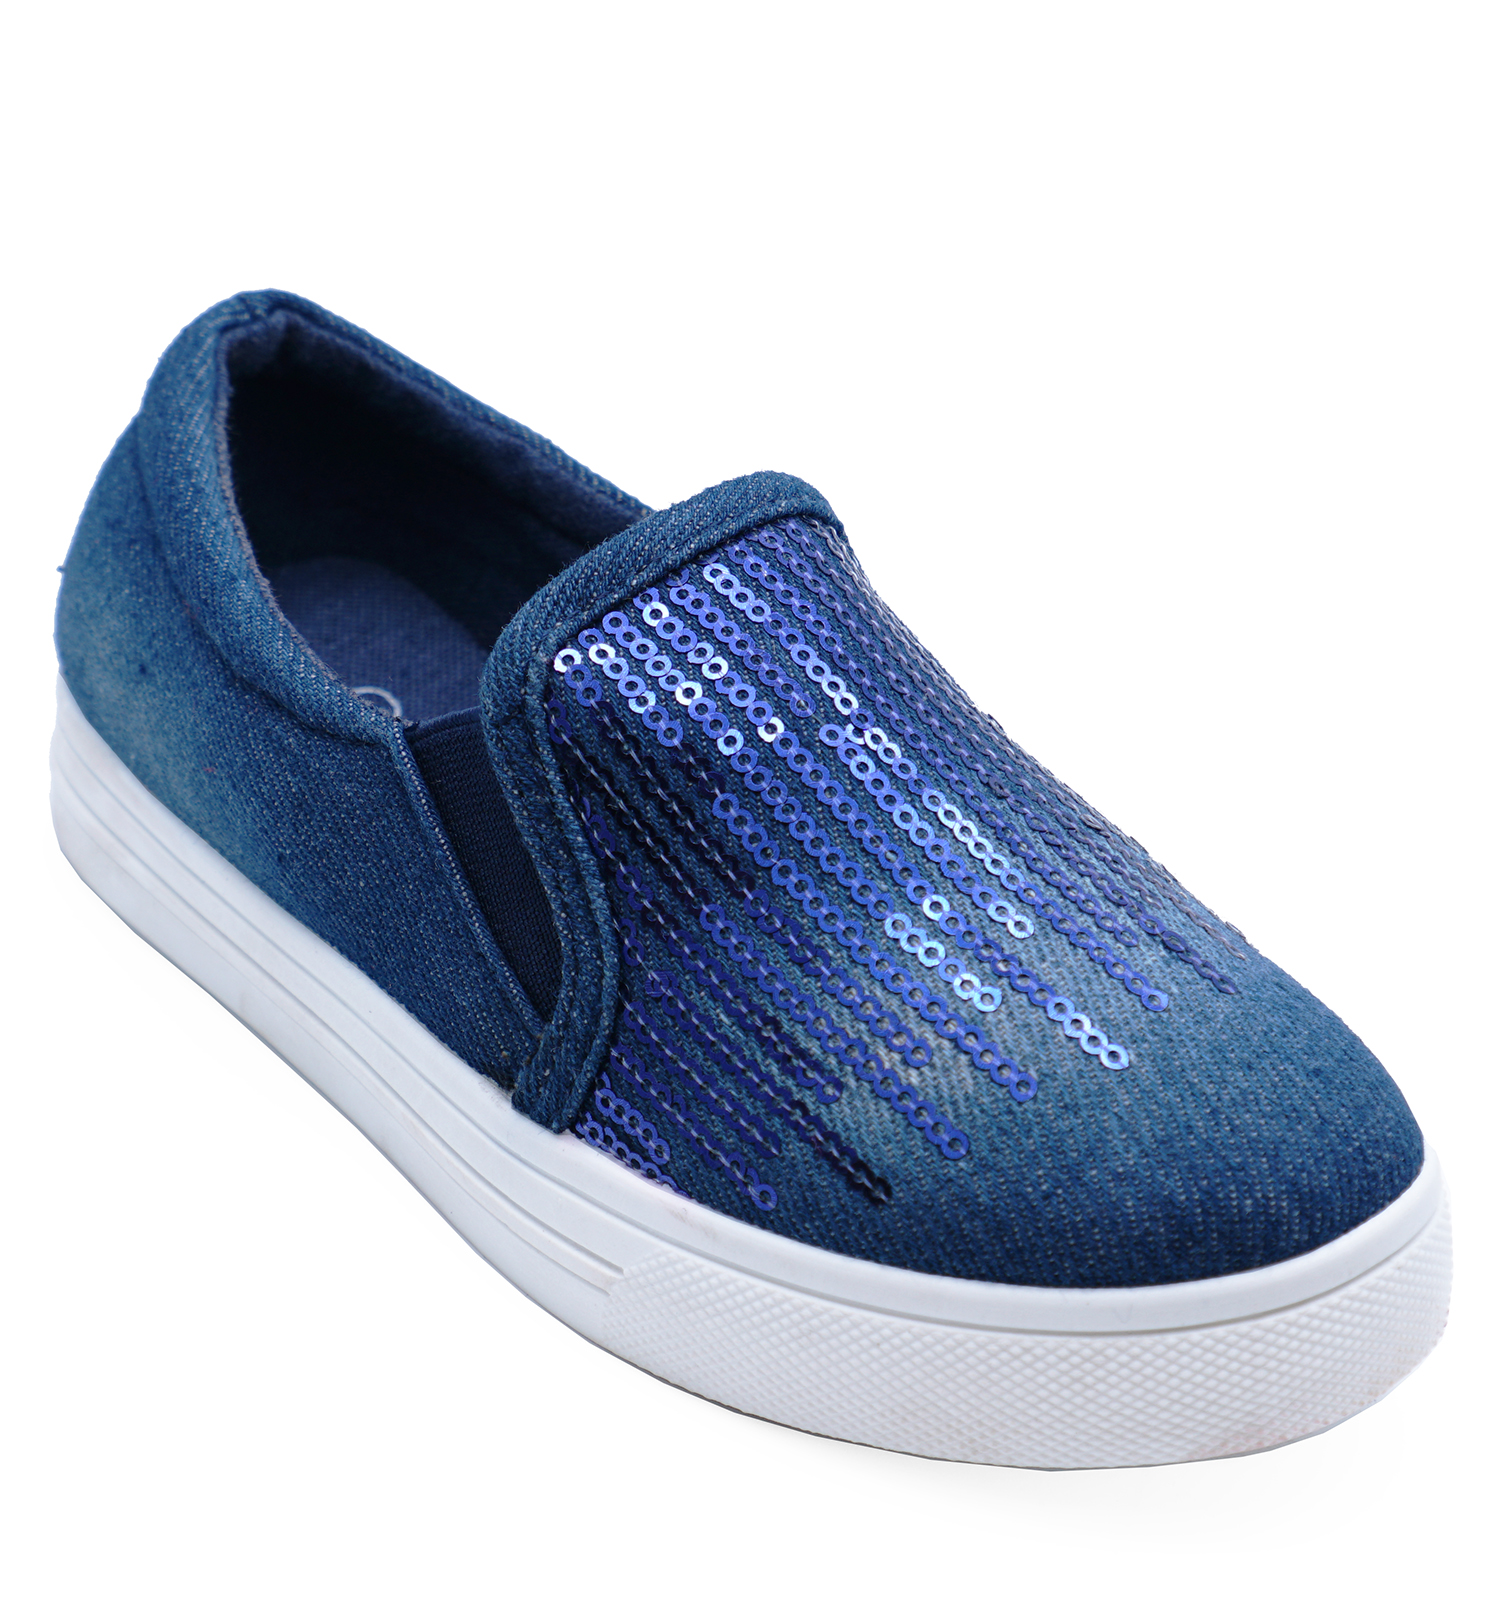 CHILDRENS-KIDS-GIRLS-DENIM-SLIP-ON-CASUAL-SHOES-TRAINERS-DANCE-PUMPS-SIZES-8-1 thumbnail 4